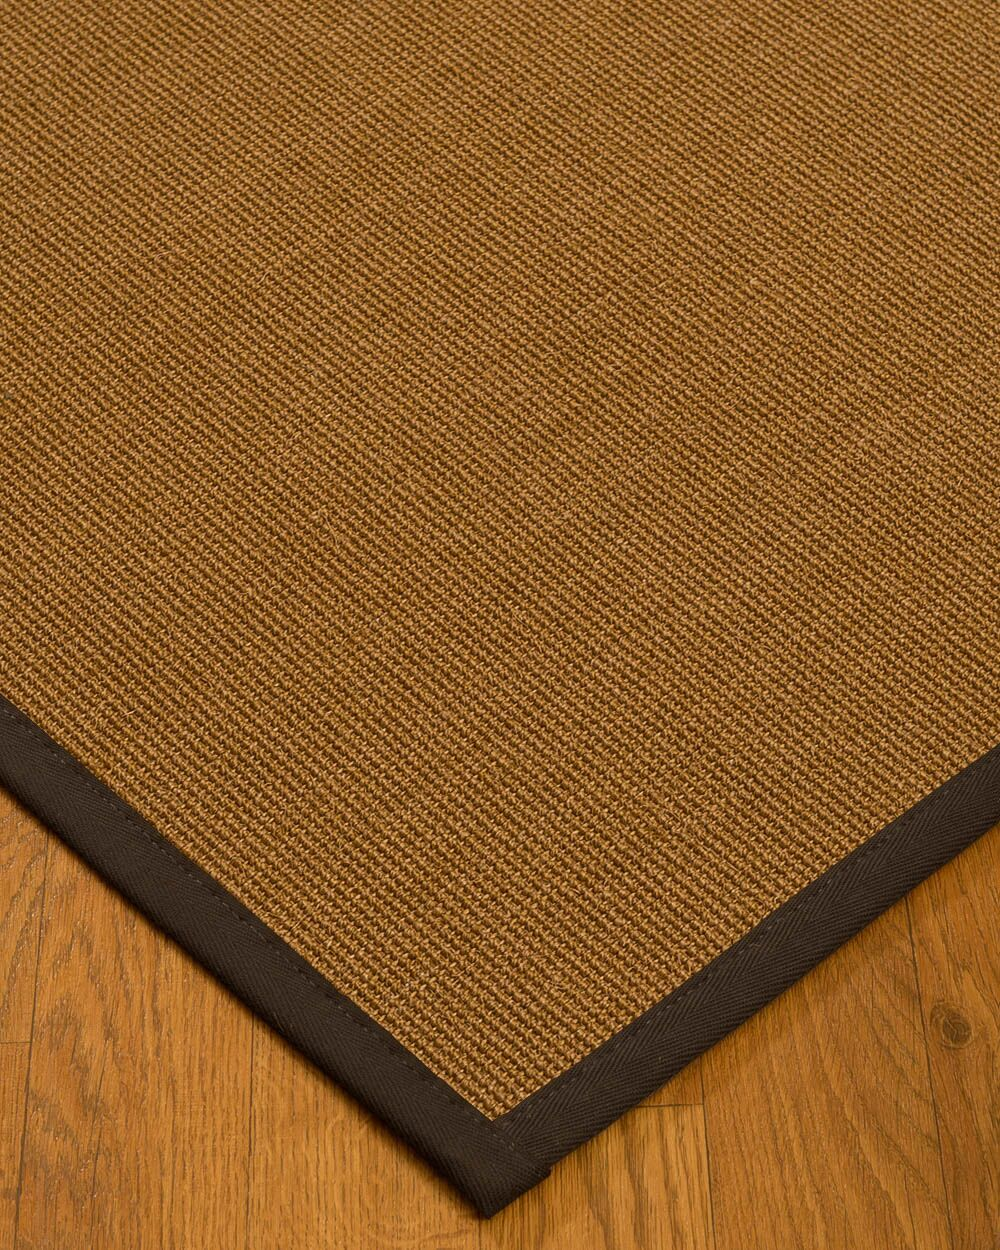 Antonina Border Hand-Woven Brown/Fudge Area Rug Rug Pad Included: No, Rug Size: Runner 2'6